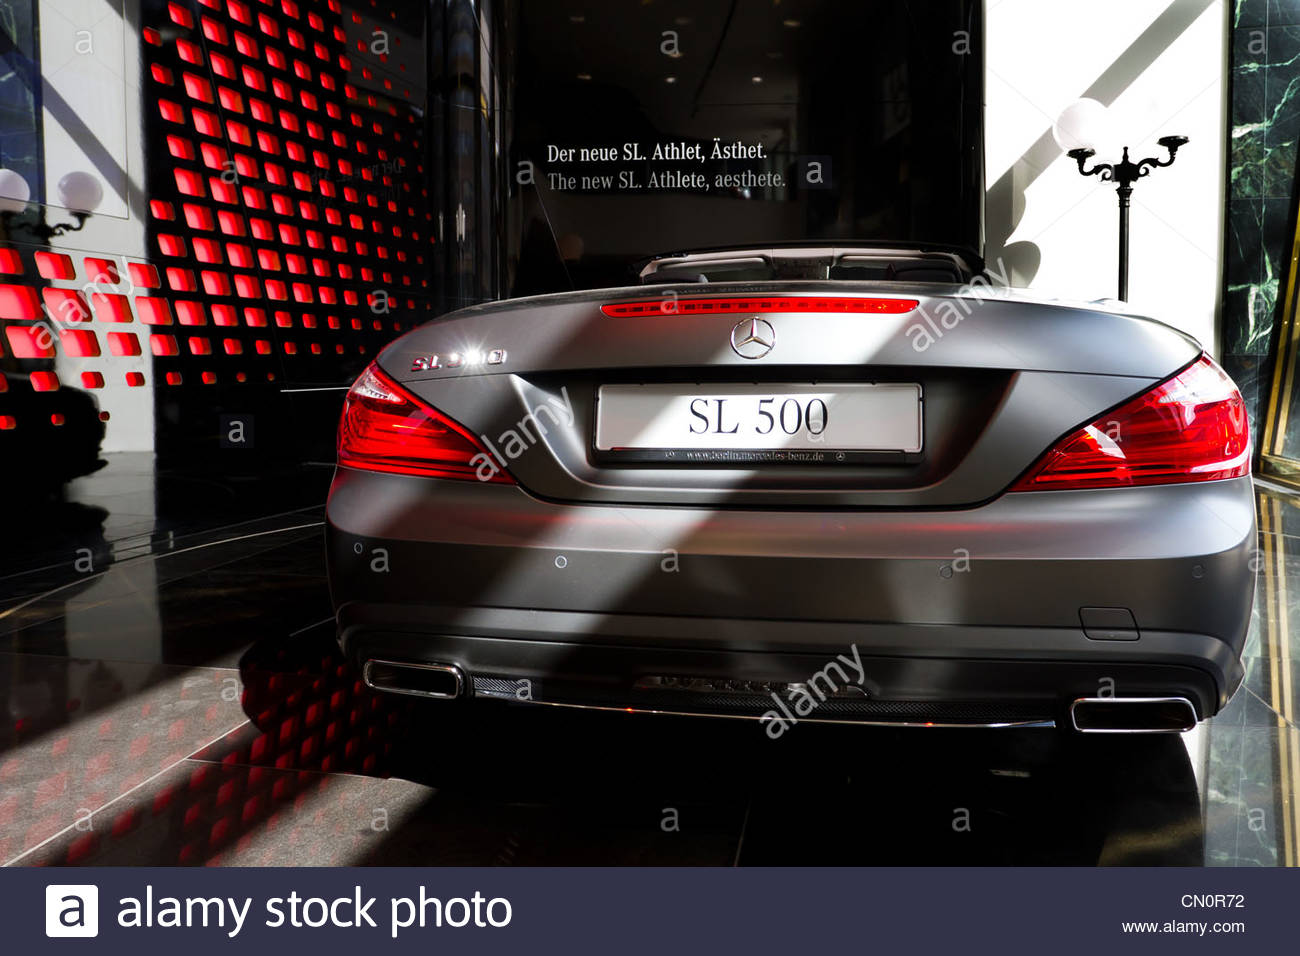 The new Mercedes SL 500 - Stock Image